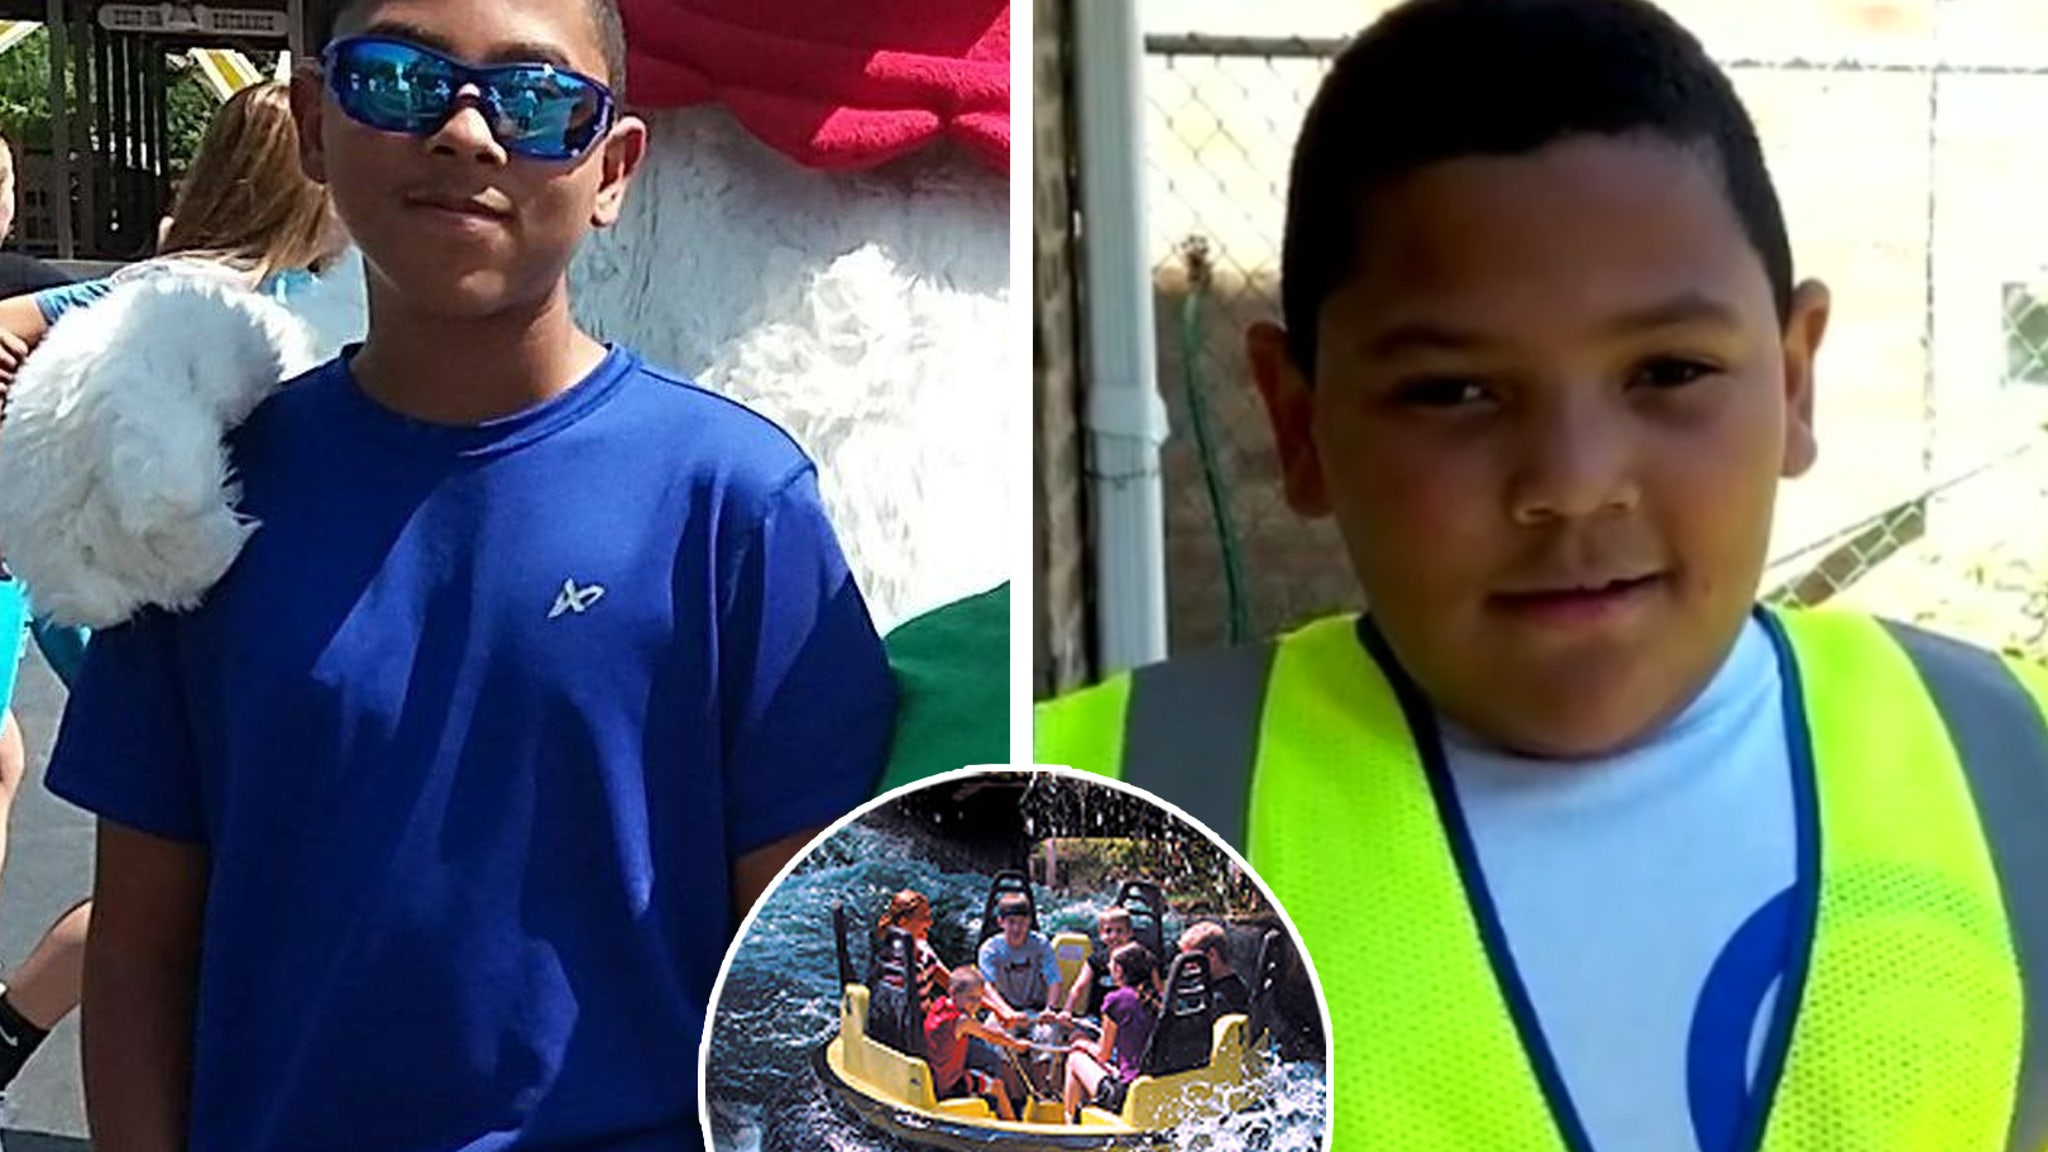 11-year-old boy killed on water ride at Iowa amusement park, 15-year-old brother in coma